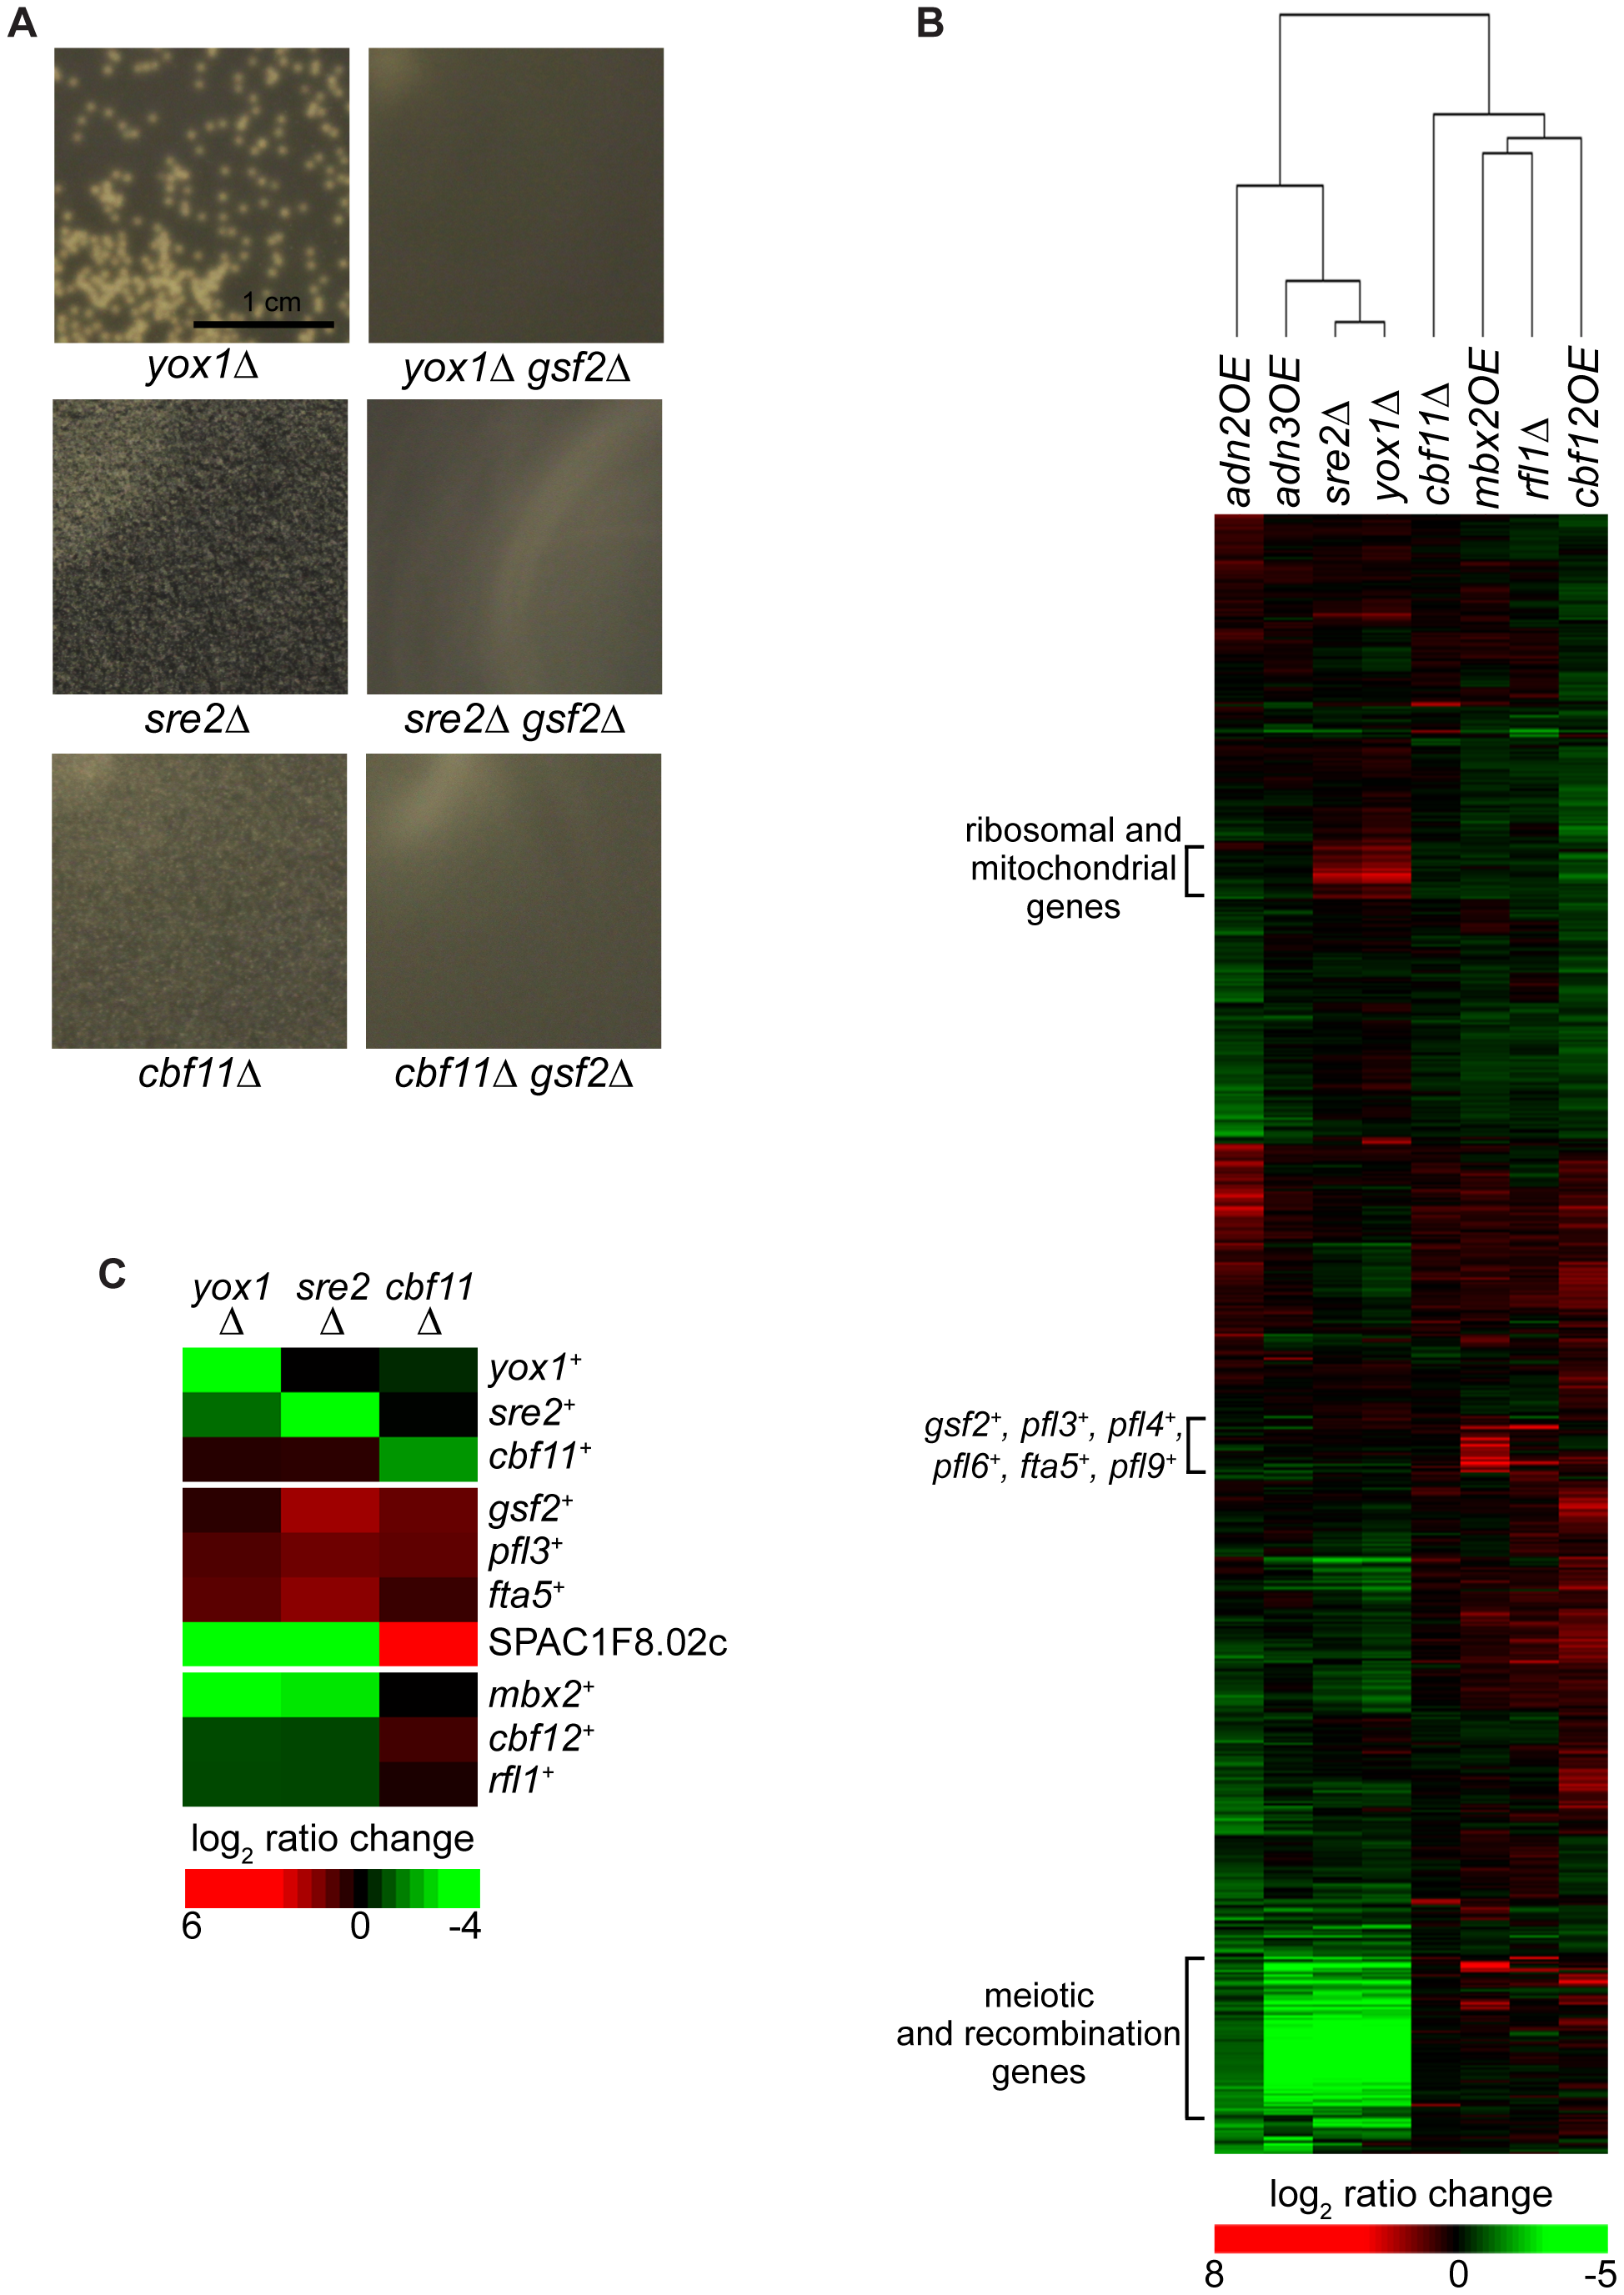 Regulation of flocculation by Yox1, Sre2, and Cbf11.